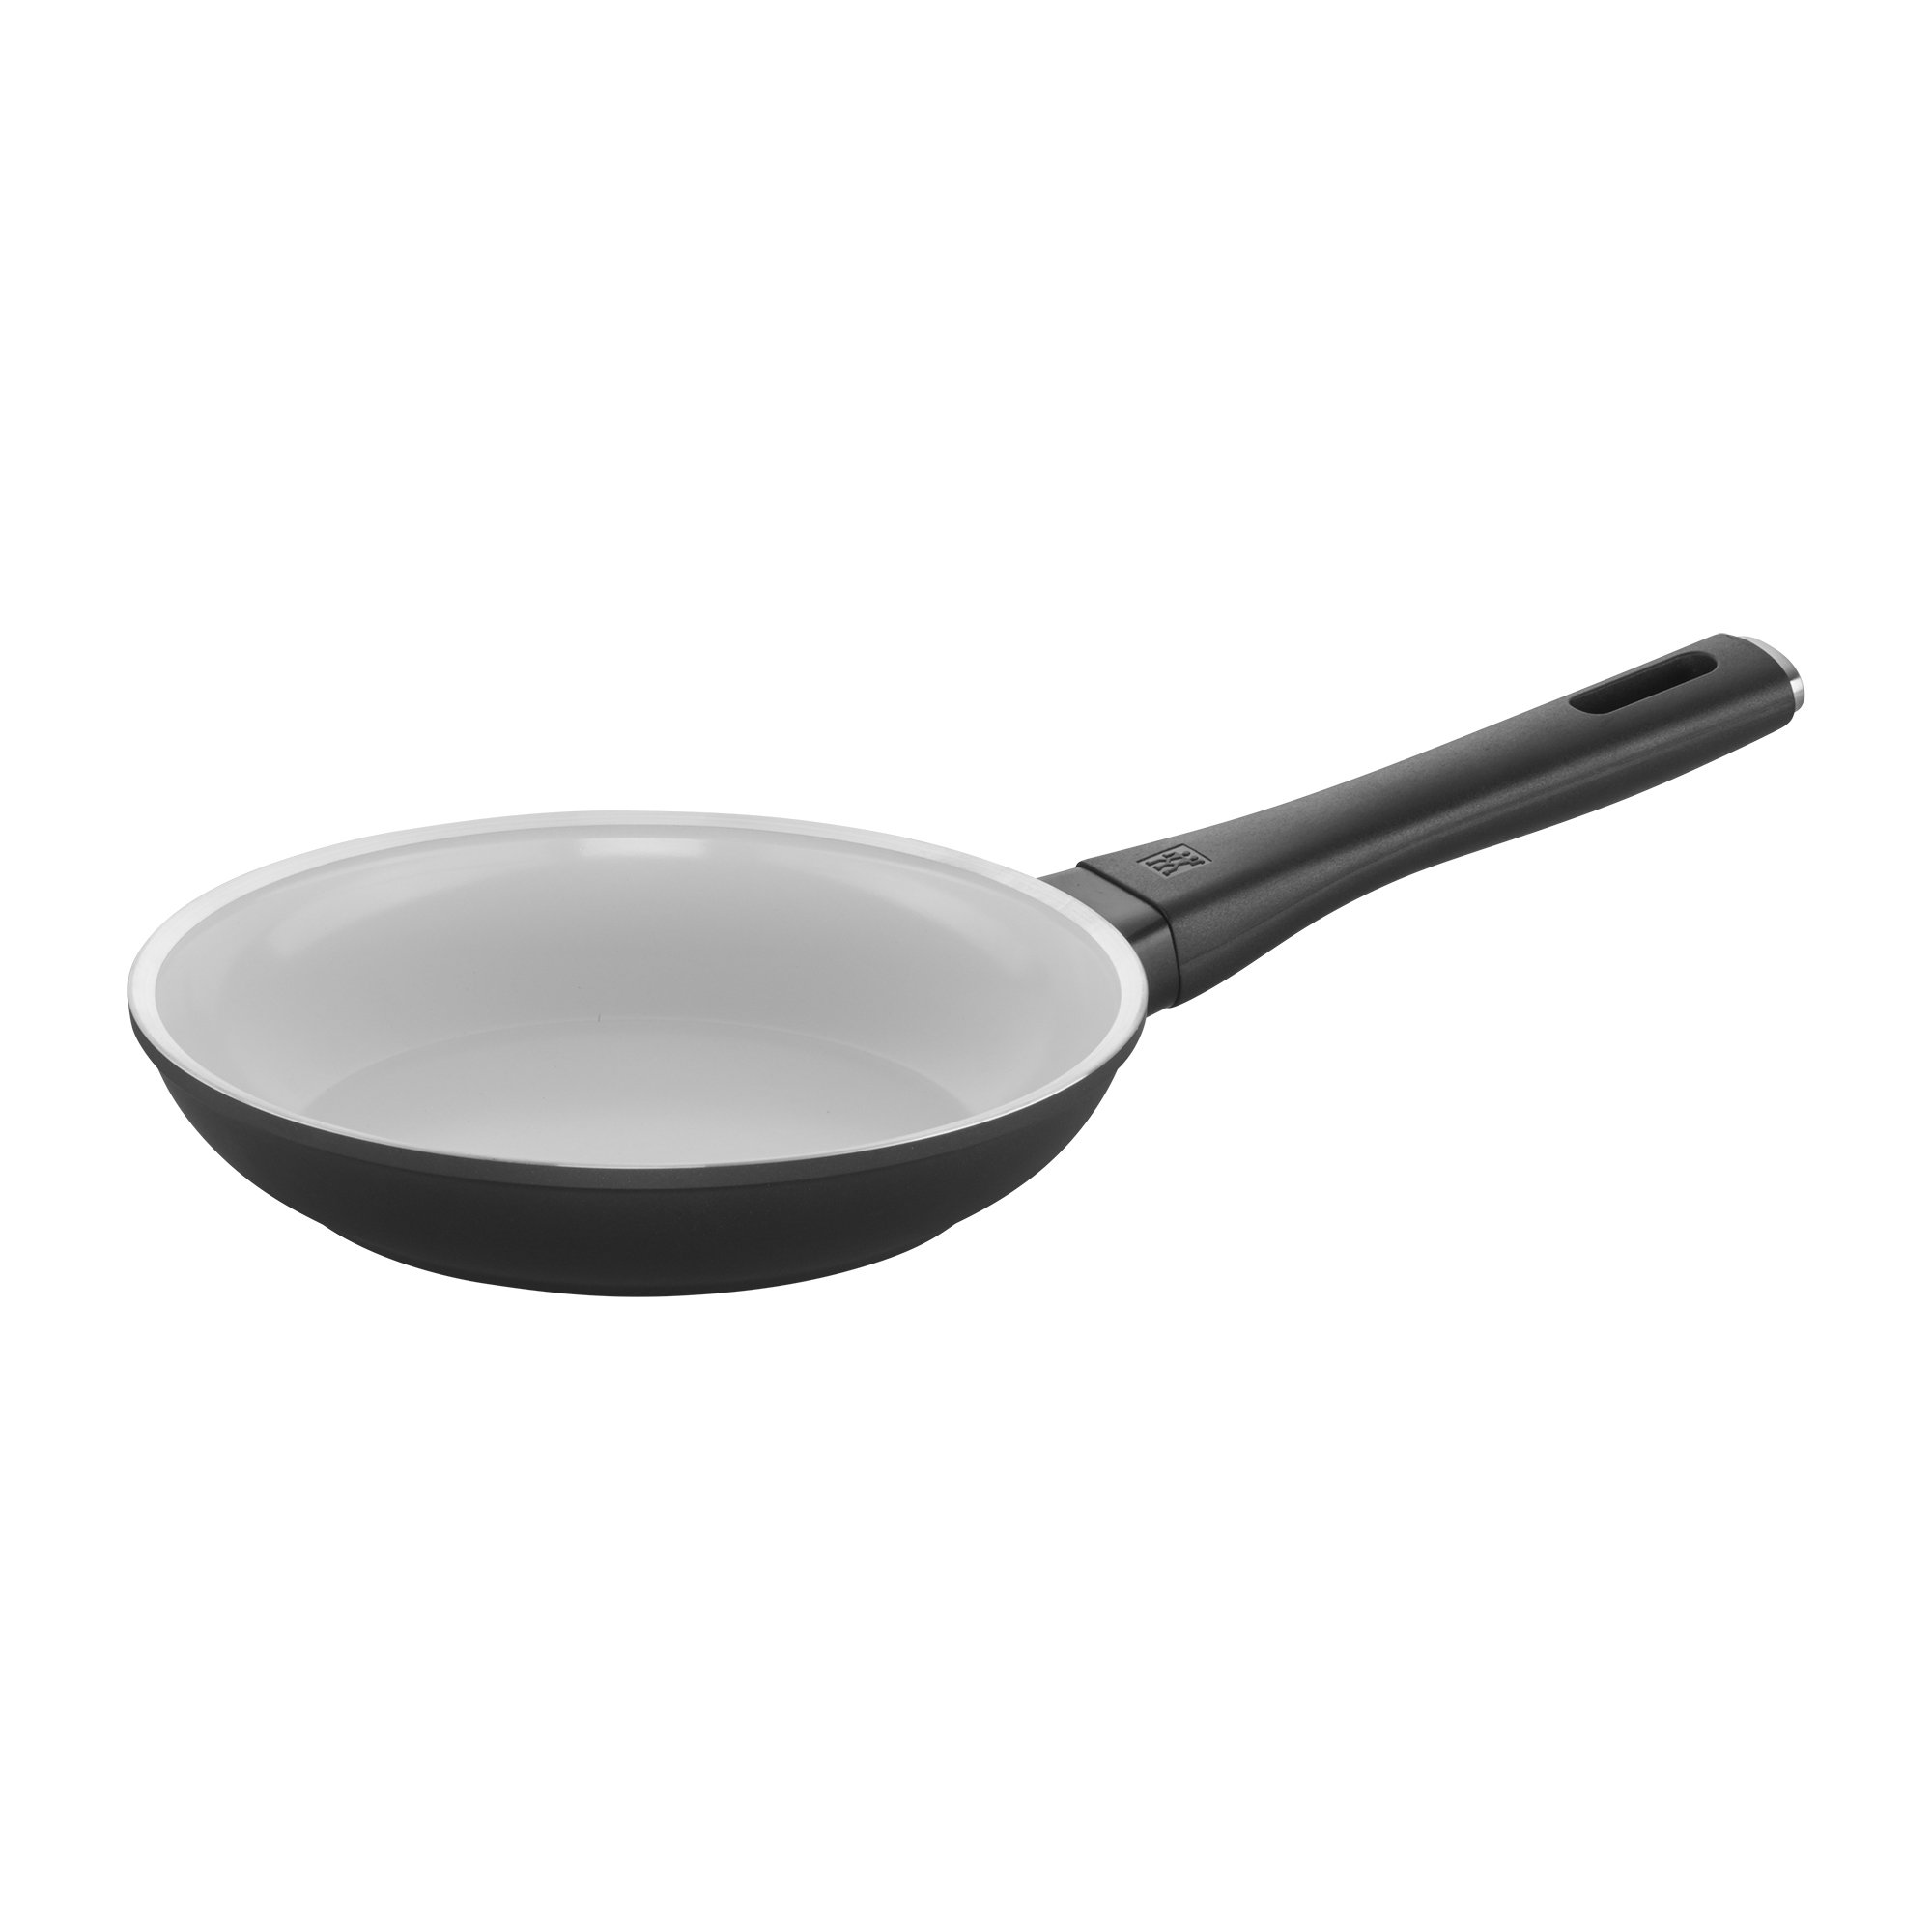 ZWILLING Carrara Plus 8-inch Ceramic Nonstick Fry Pan by ZWILLING J.A. Henckels (Image #1)